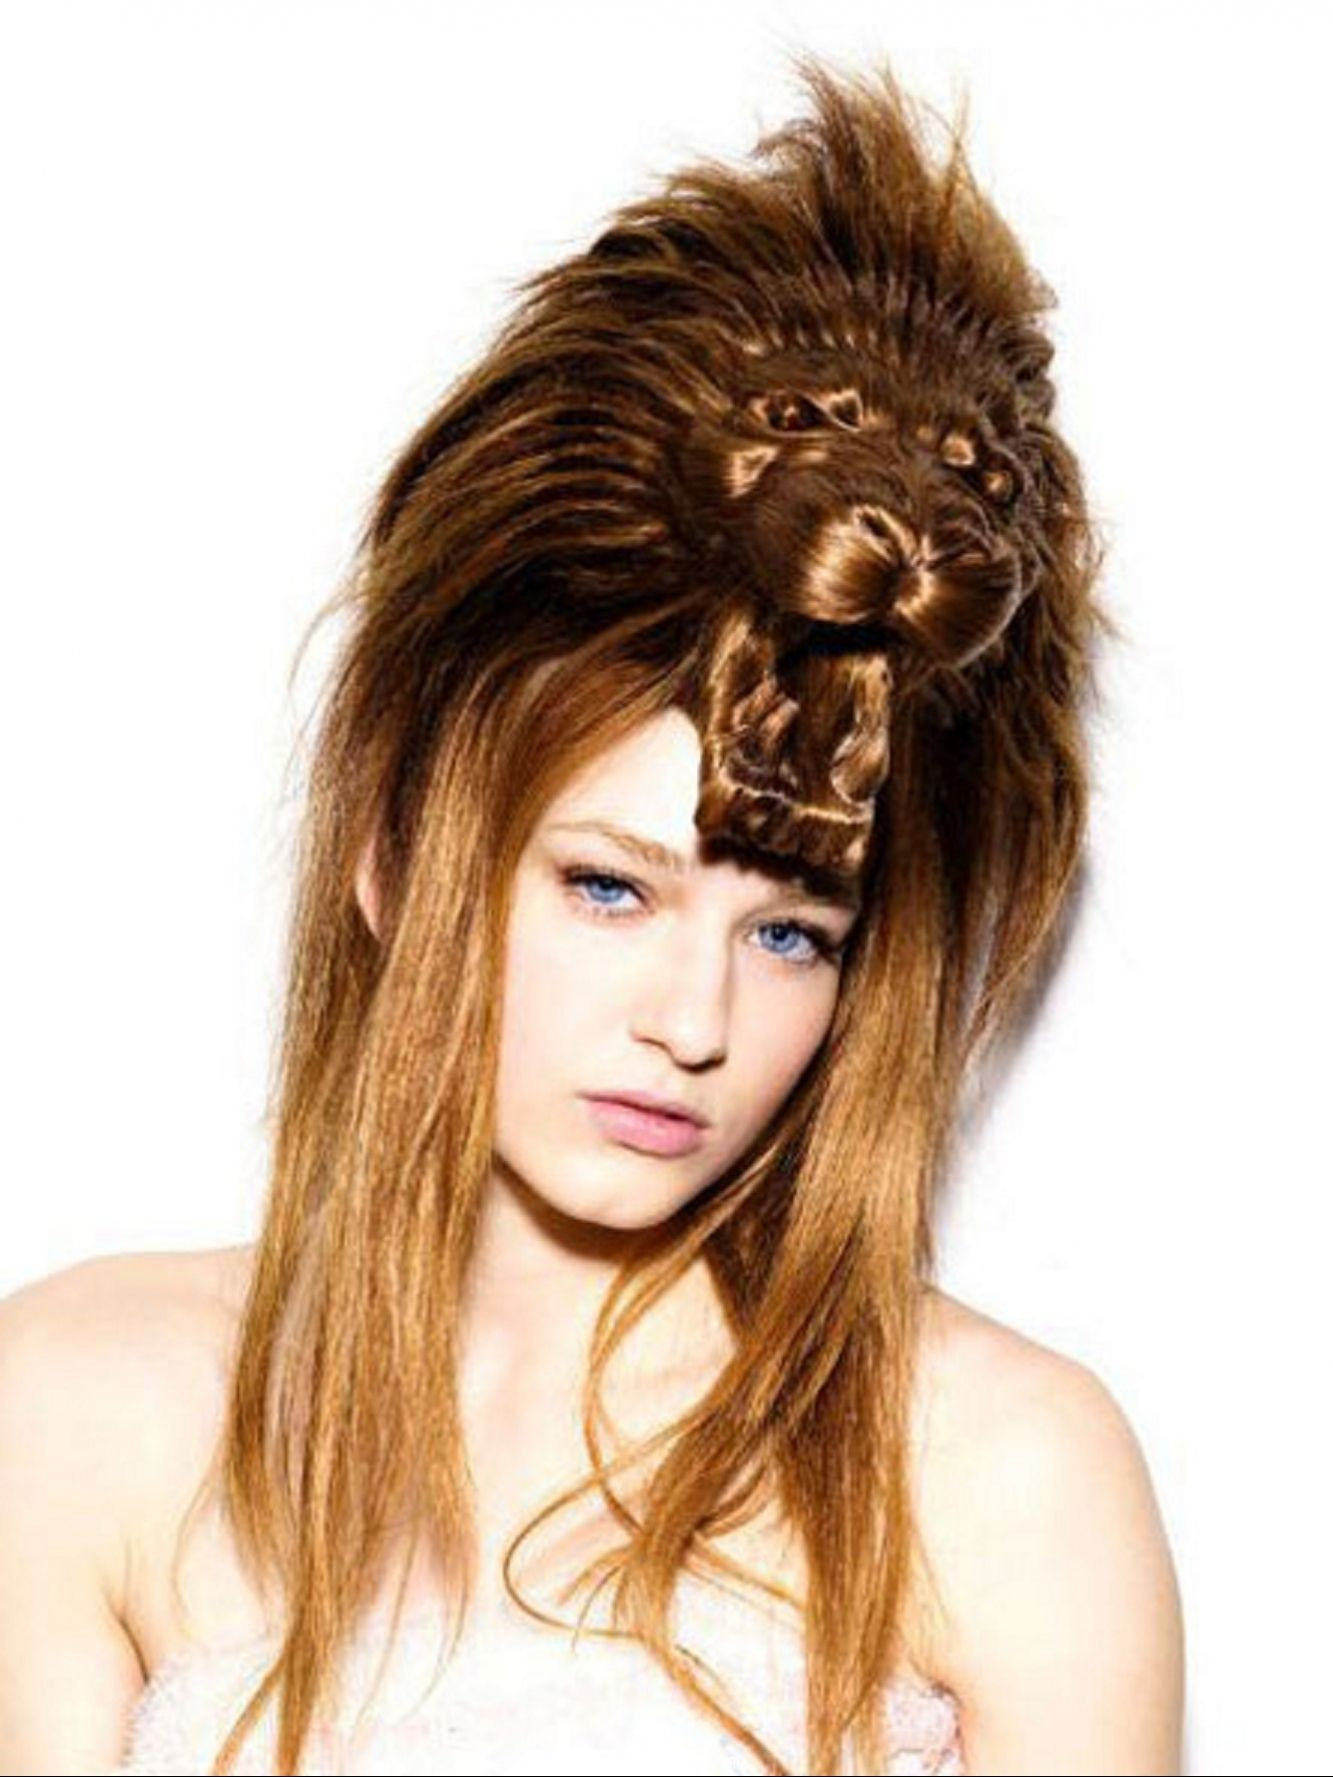 Check Out Lion Hairstyle Ideas Weird Hairstyle Hair Humor Hair Styles Cool Hairstyles